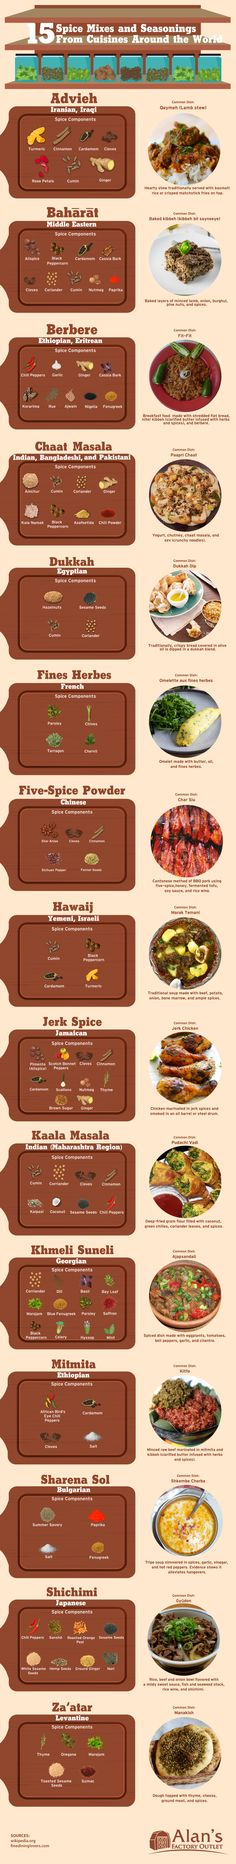 15 Spice Mixes and Seasonings from Cuisines Around the World